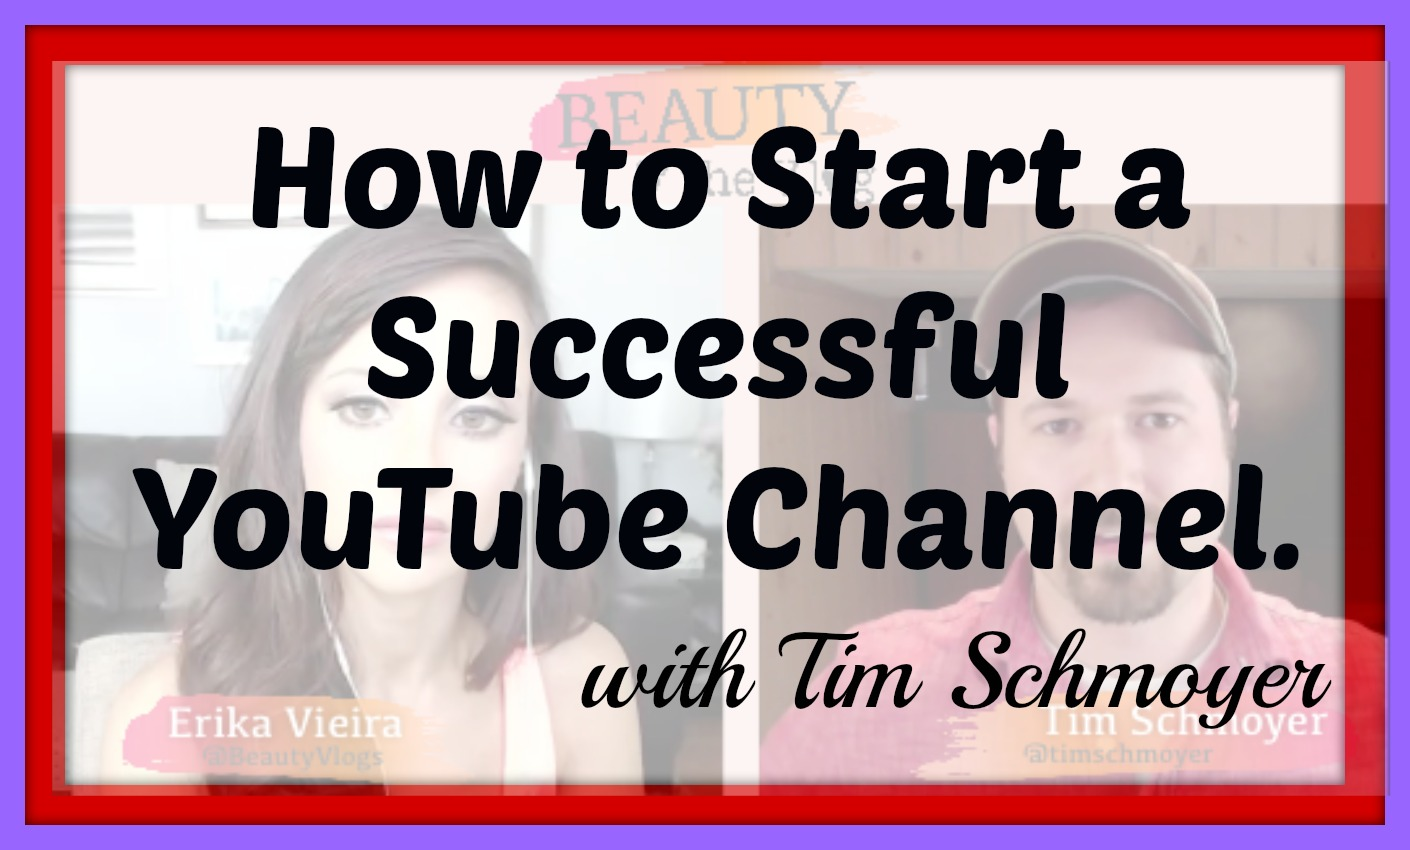 33- YouTube Channel 101: How to start and grow a YouTube channel Tim Schmoyer Interview